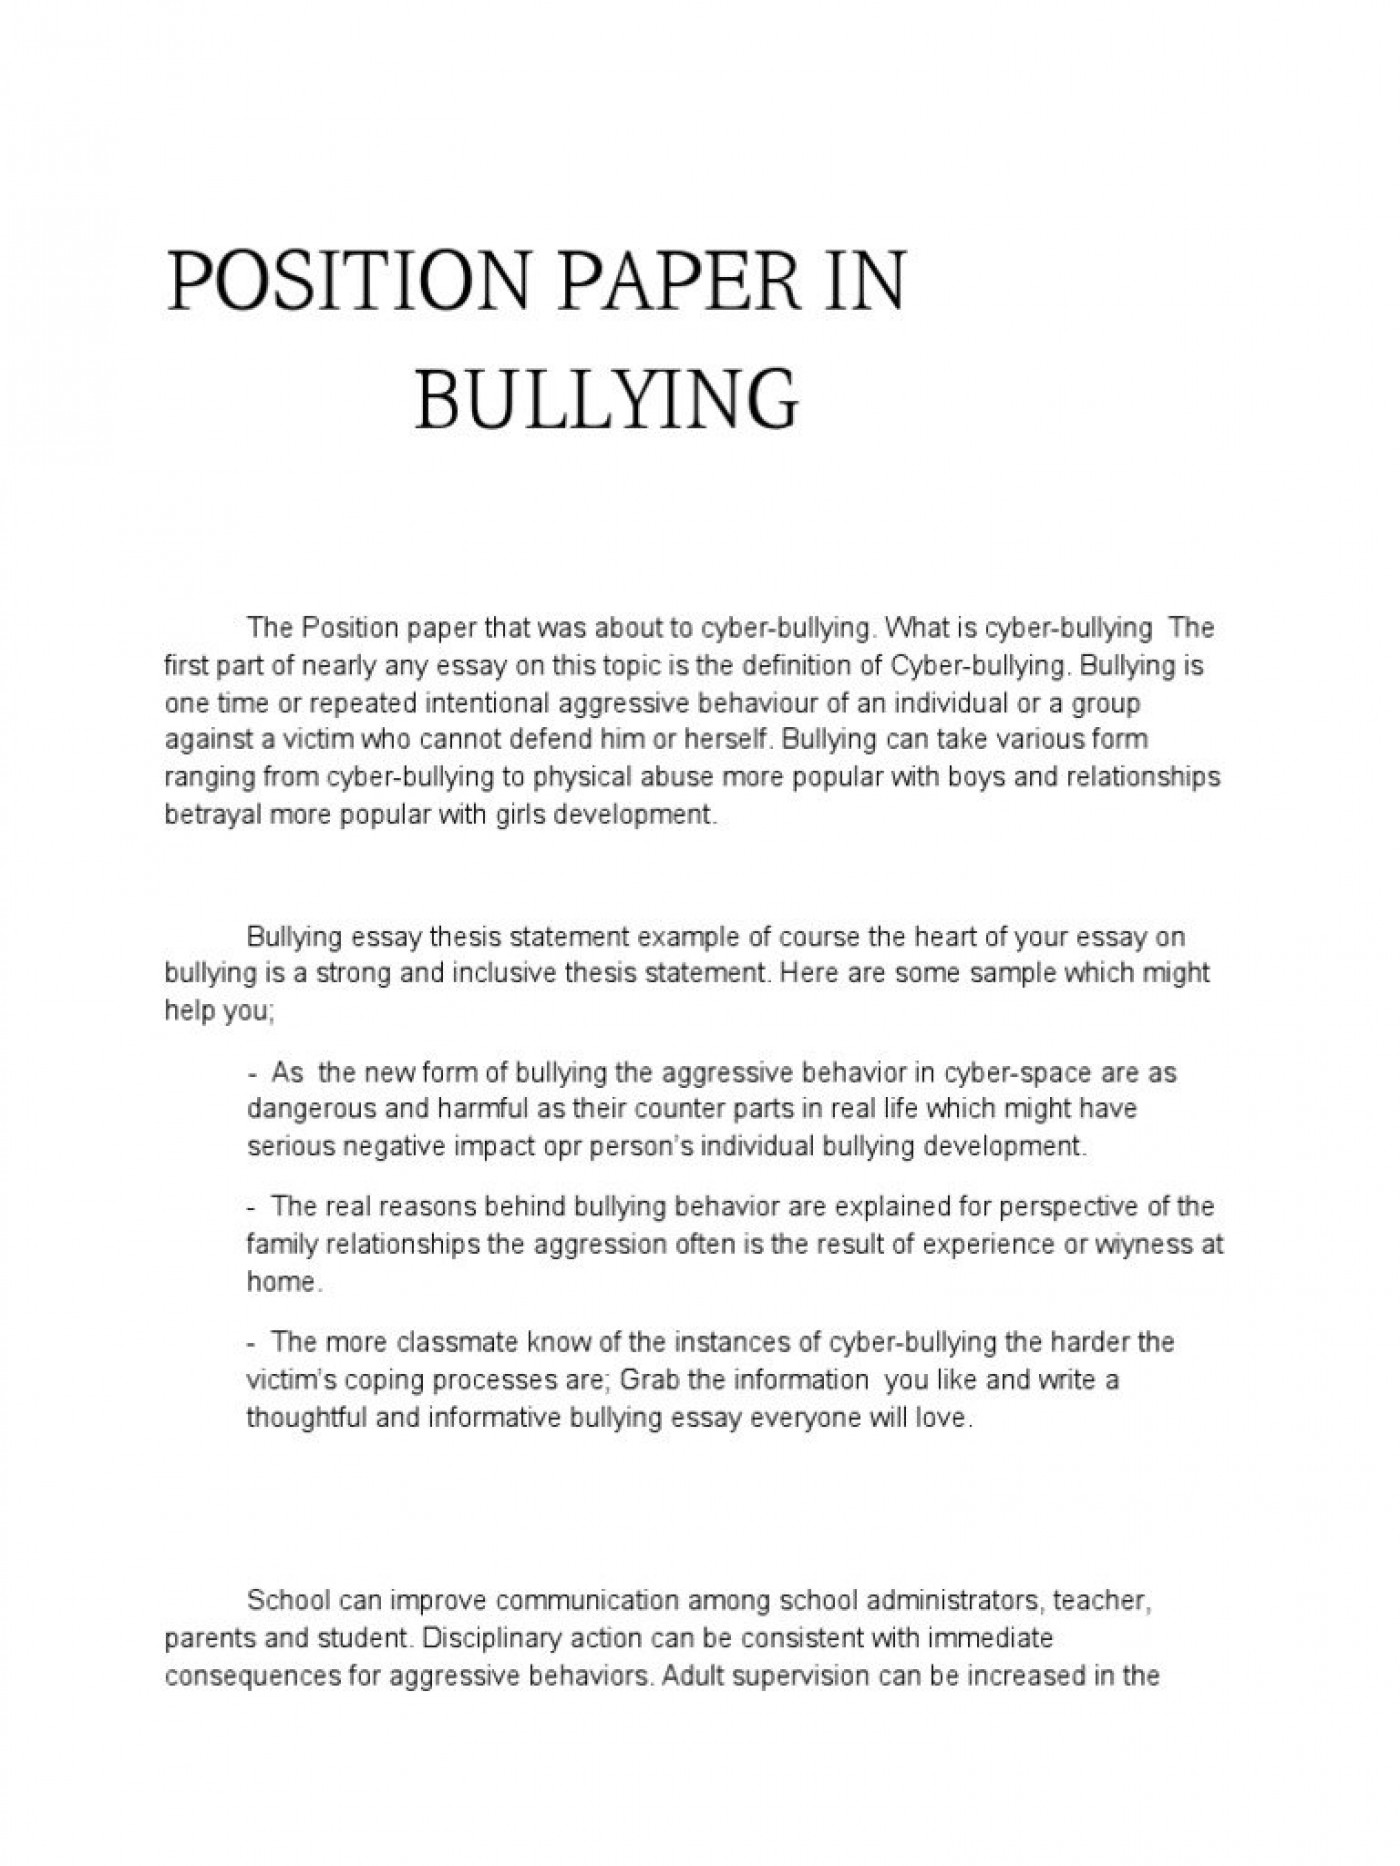 005 Bullying Essay Example Good Conclusion For Academic Writing Service Cause And Effect On In Awful Topics Cyber Titles Persuasive Ideas 1400